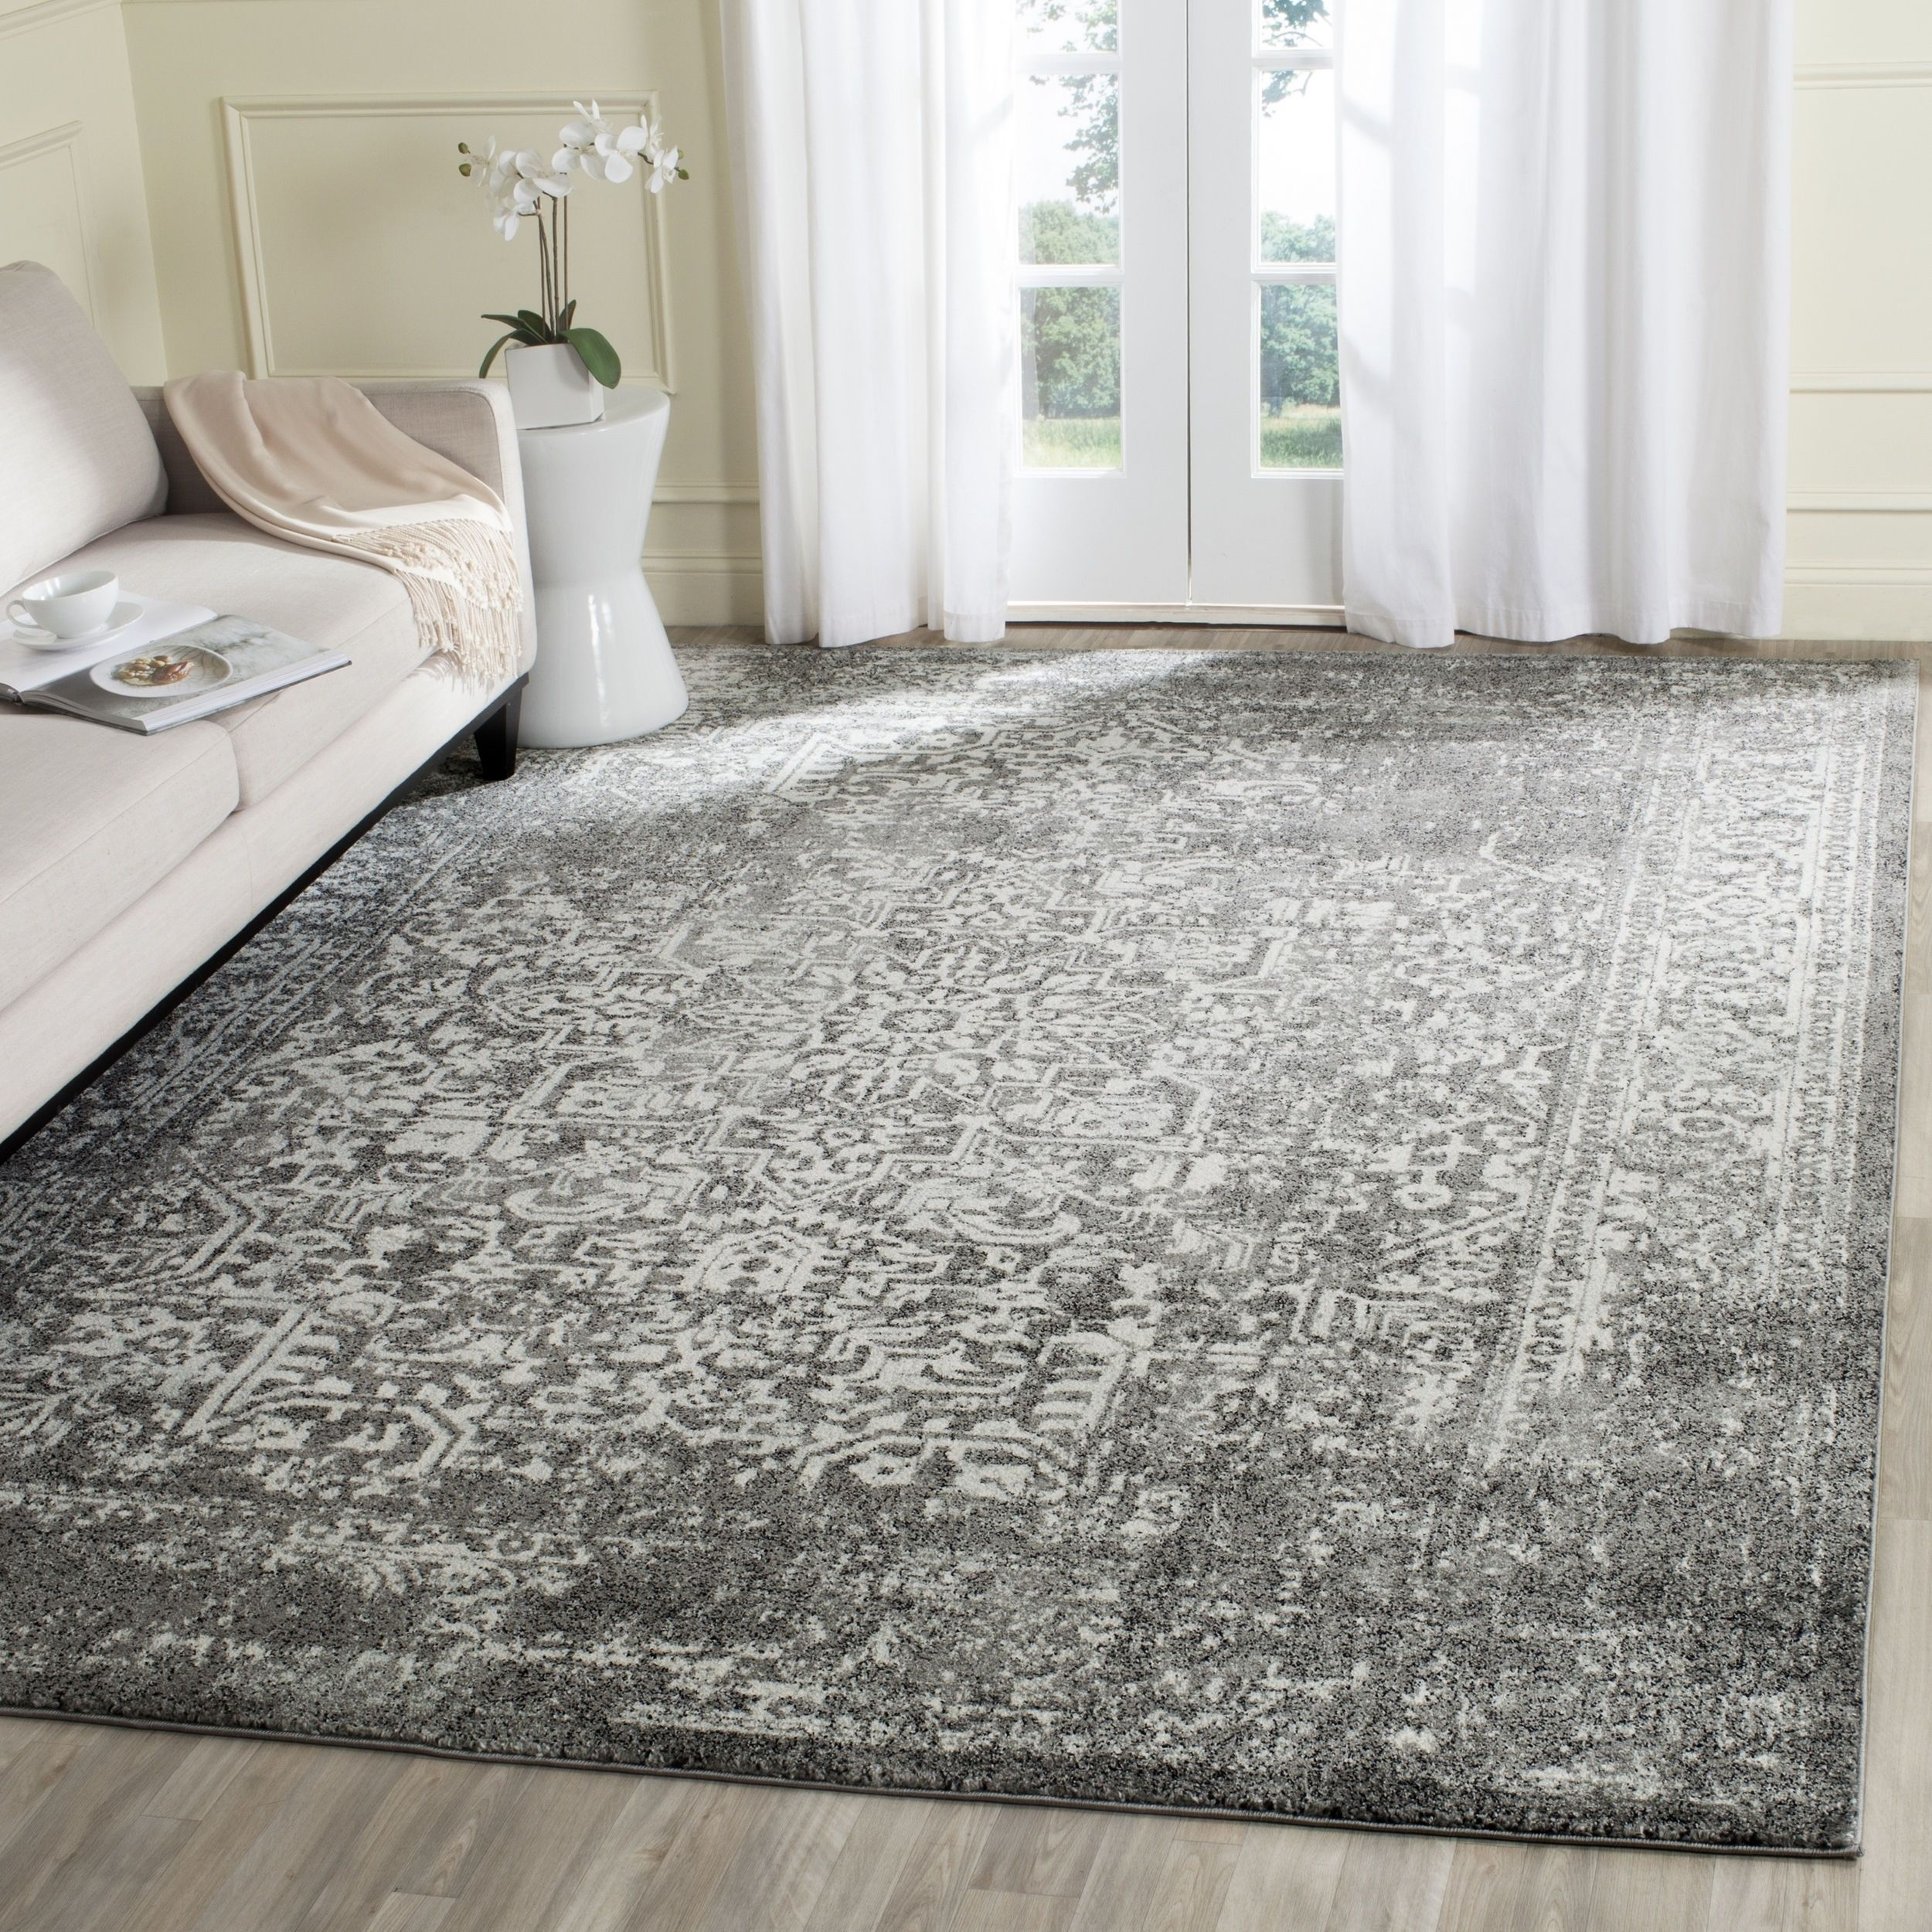 Safavieh Area Rugs Free Shipping On Orders Over 45 Find The Perfect Rug